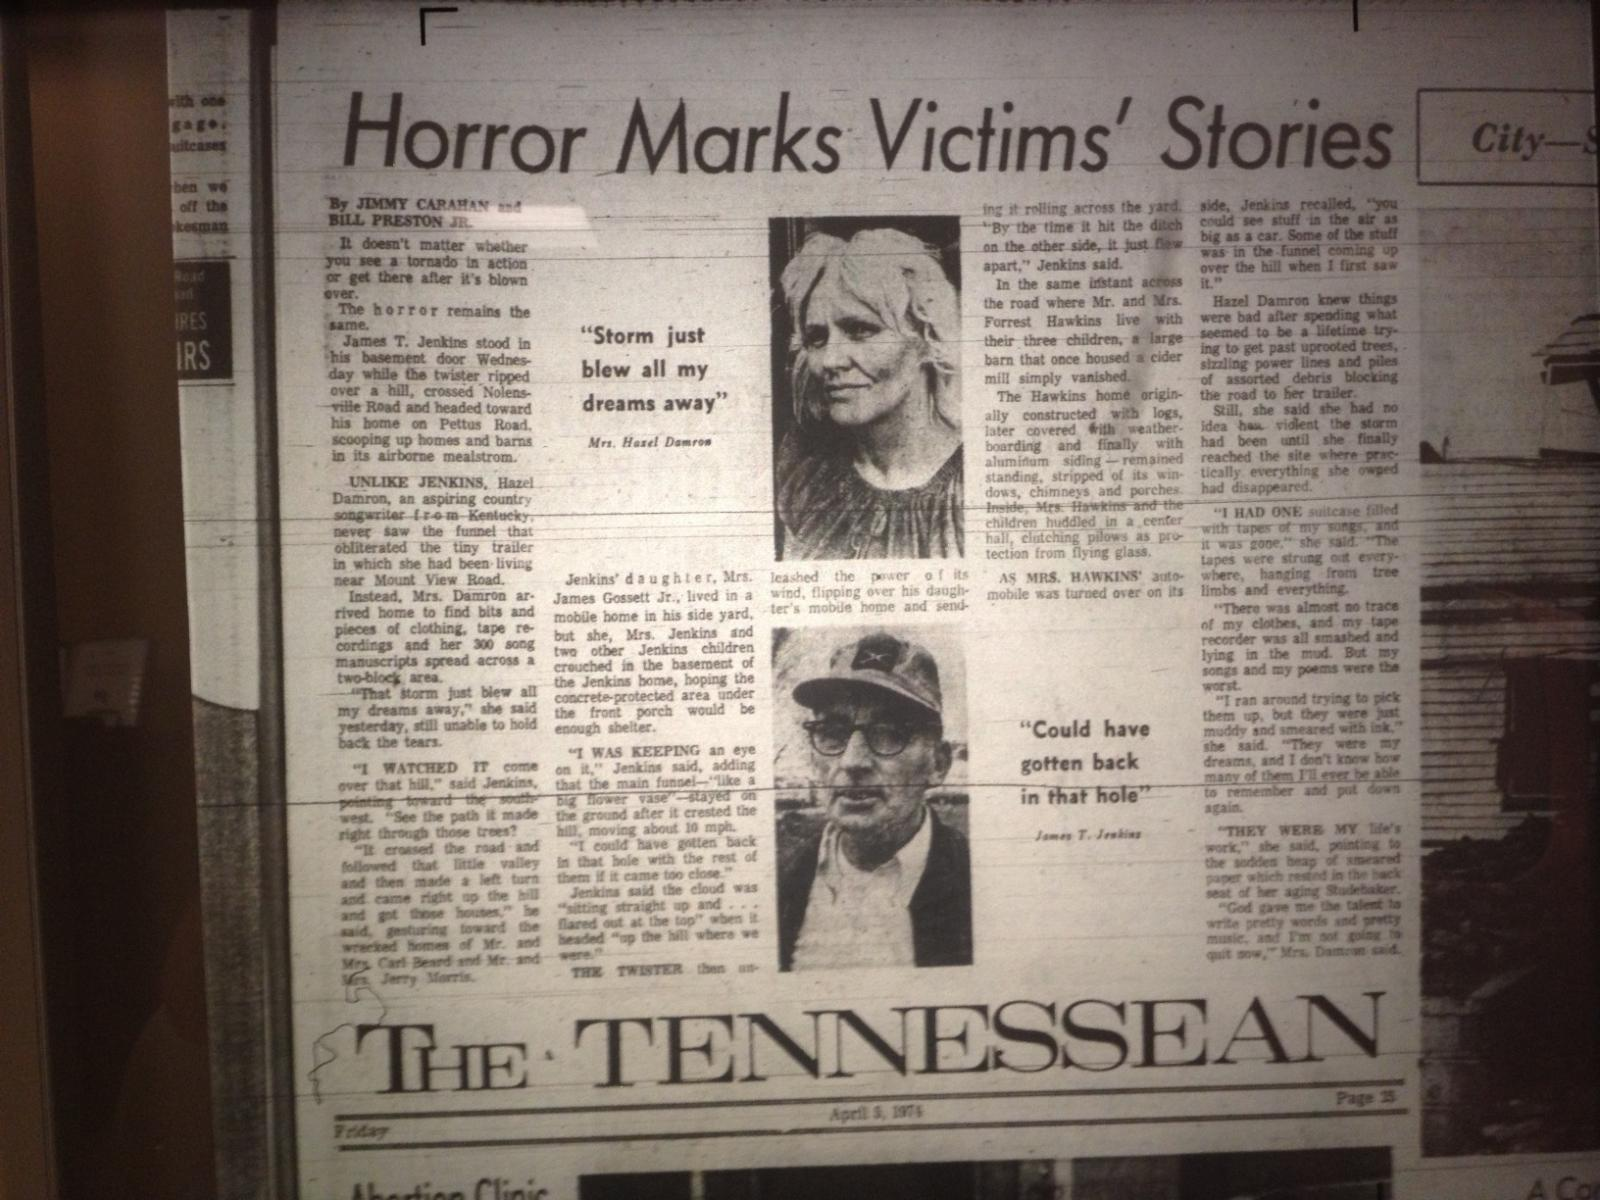 Tennessean Article